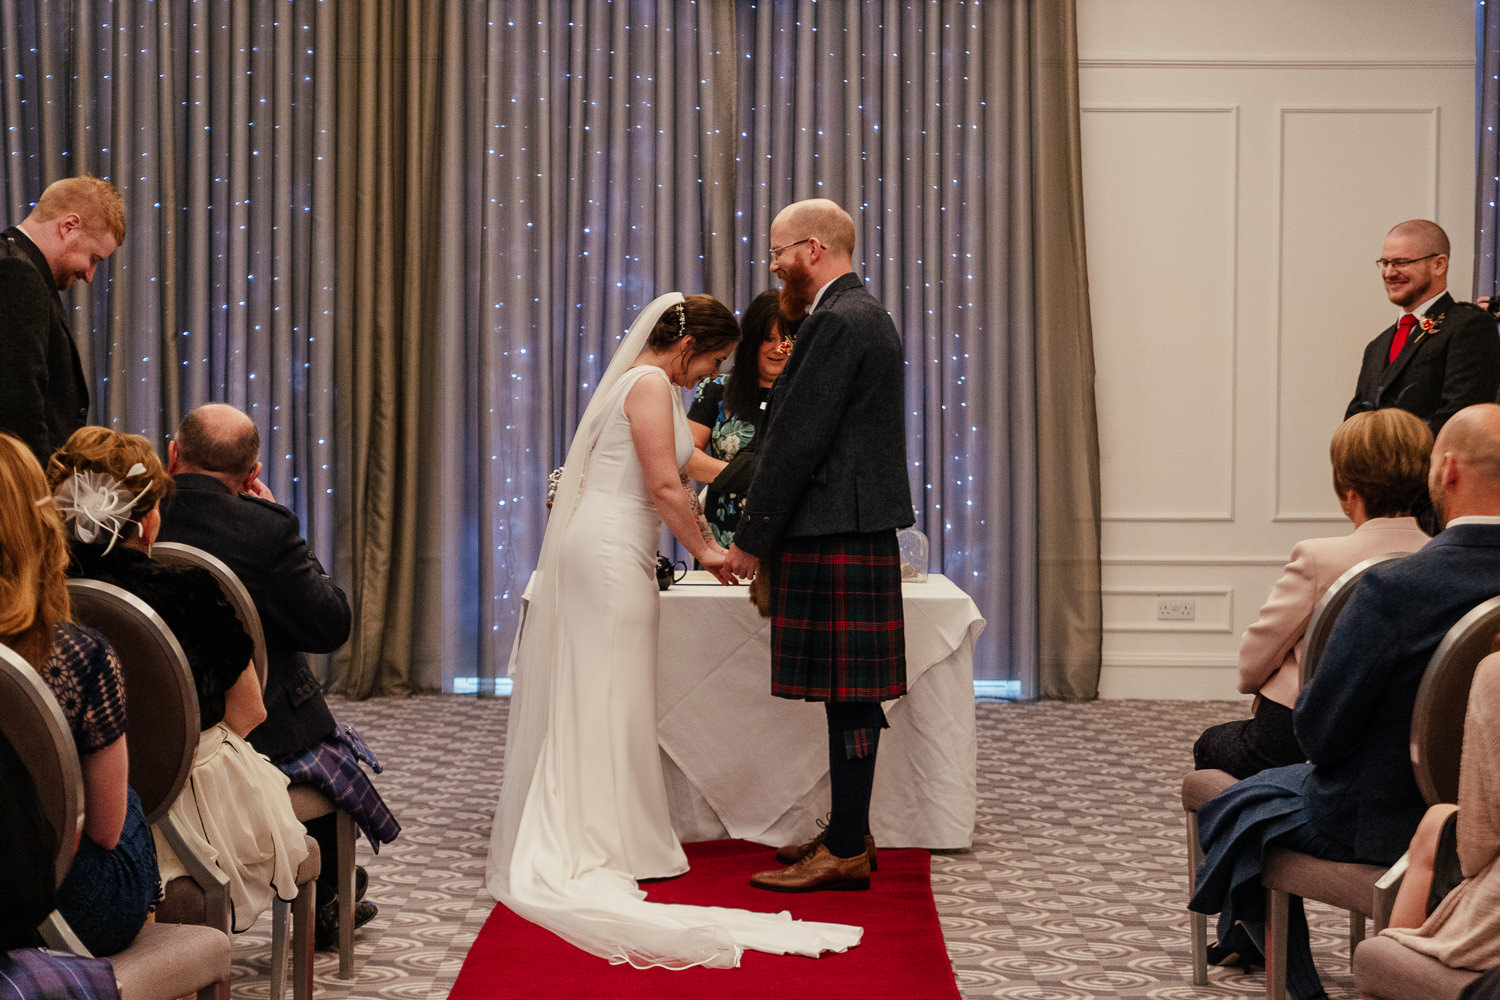 chester hotel wedding ceremony aberdeen interior function room granite suite